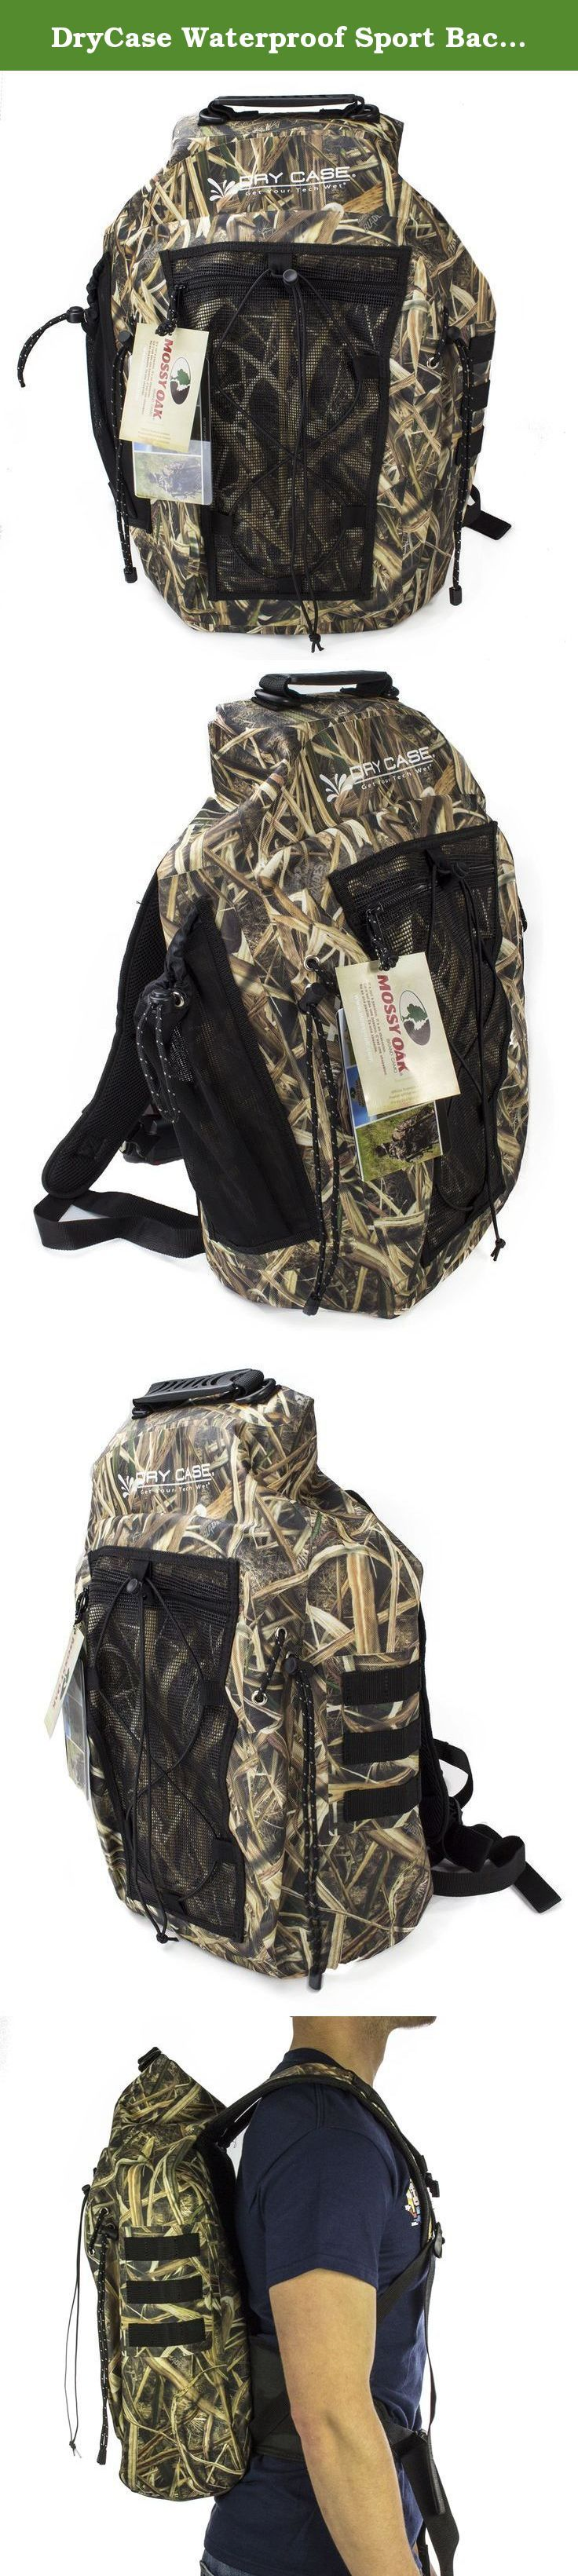 DryCase Waterproof Sport Backpack, 35 L, Camo. The Brunswick is the first ever waterproof backpack featuring Mossy Oak camouflage Shadow grass blades camouflage. It is perfect for toting all your hunting essentials and offers complete concealment in the pit, blind or boat. The Brunswick features a two way purge valve located on the bottom of the bag allowing you to squeeze out any air trapped inside or fill the bag with air to make it float. The two-way valve even doubles as a draining…